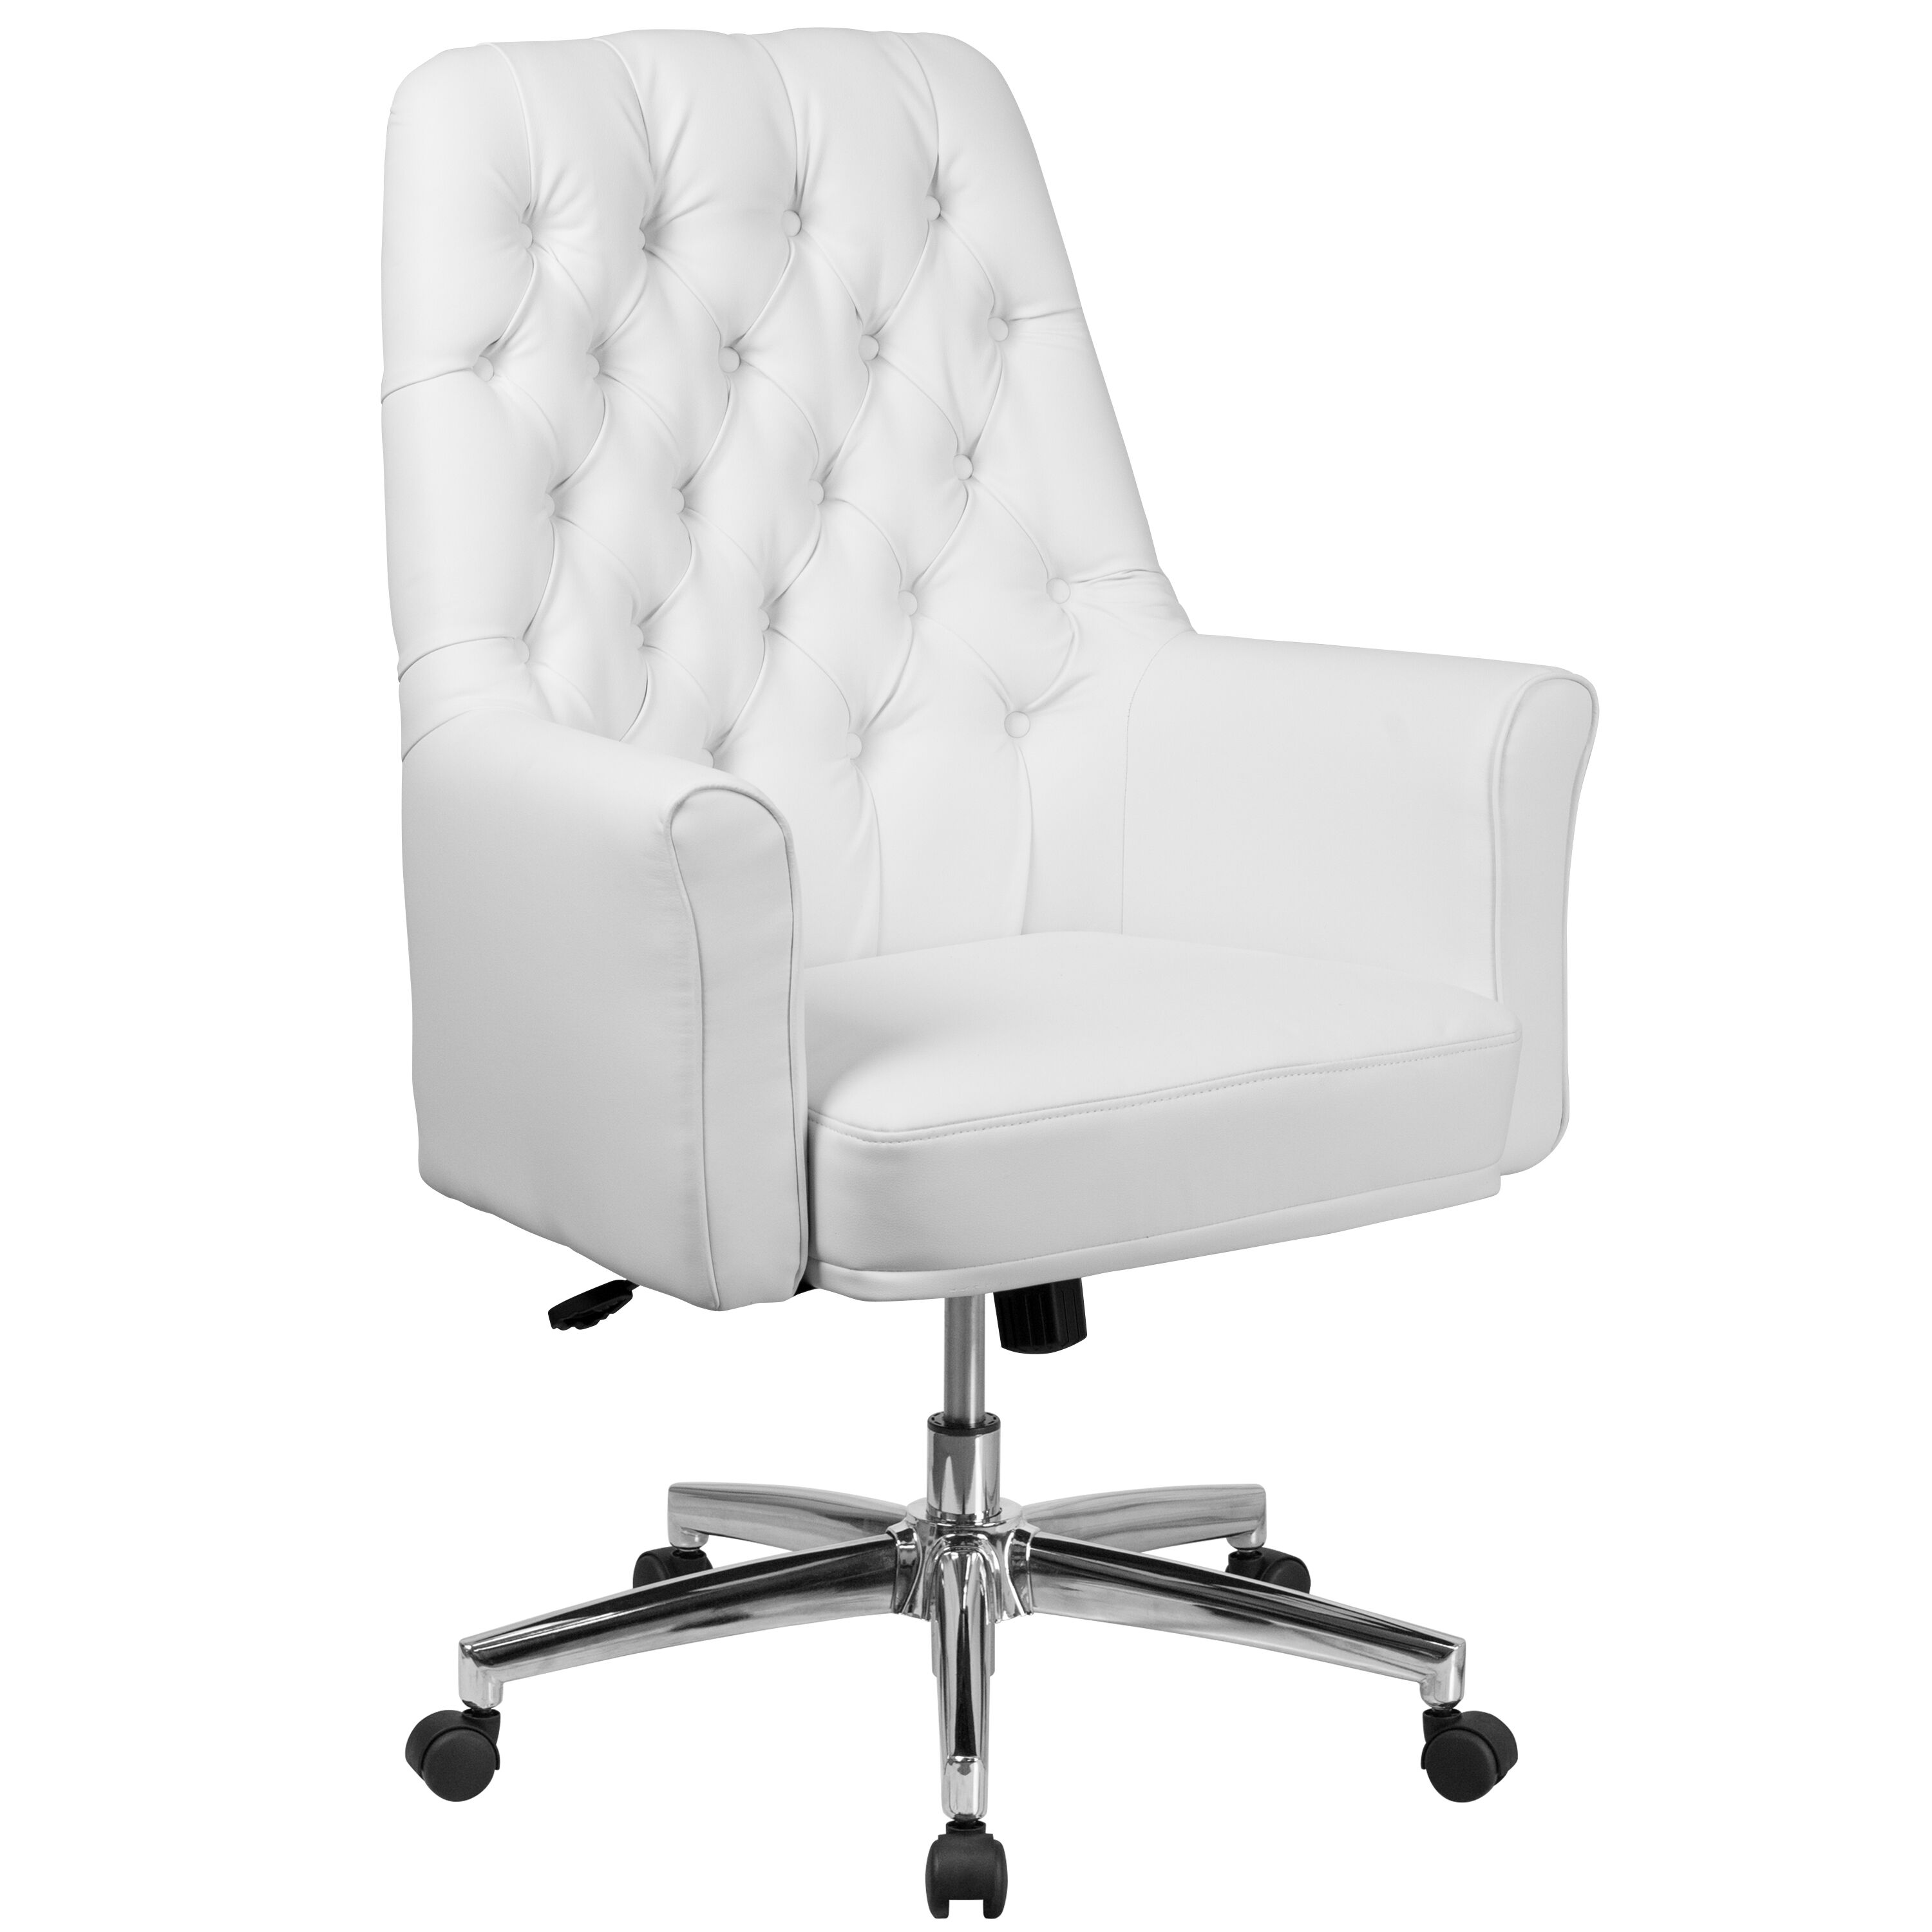 leather office chairs australia big and tall dining room white mid back chair bt 444 wh gg bizchair